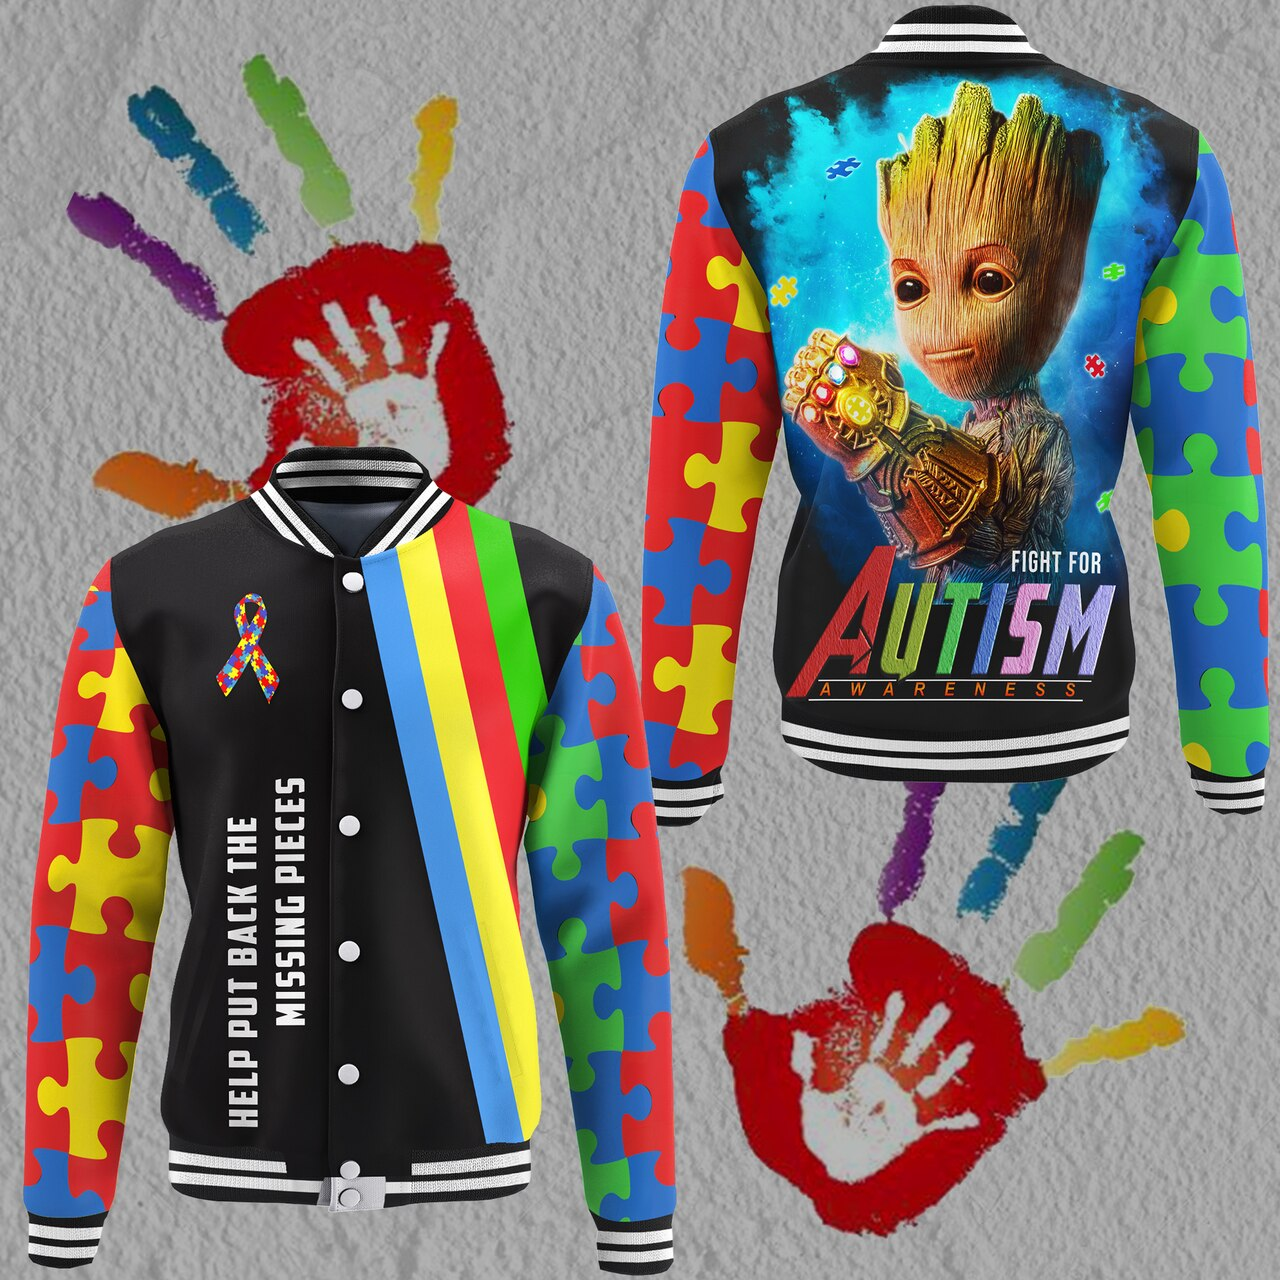 Groot fight for autism awareness full printing baseball jacket